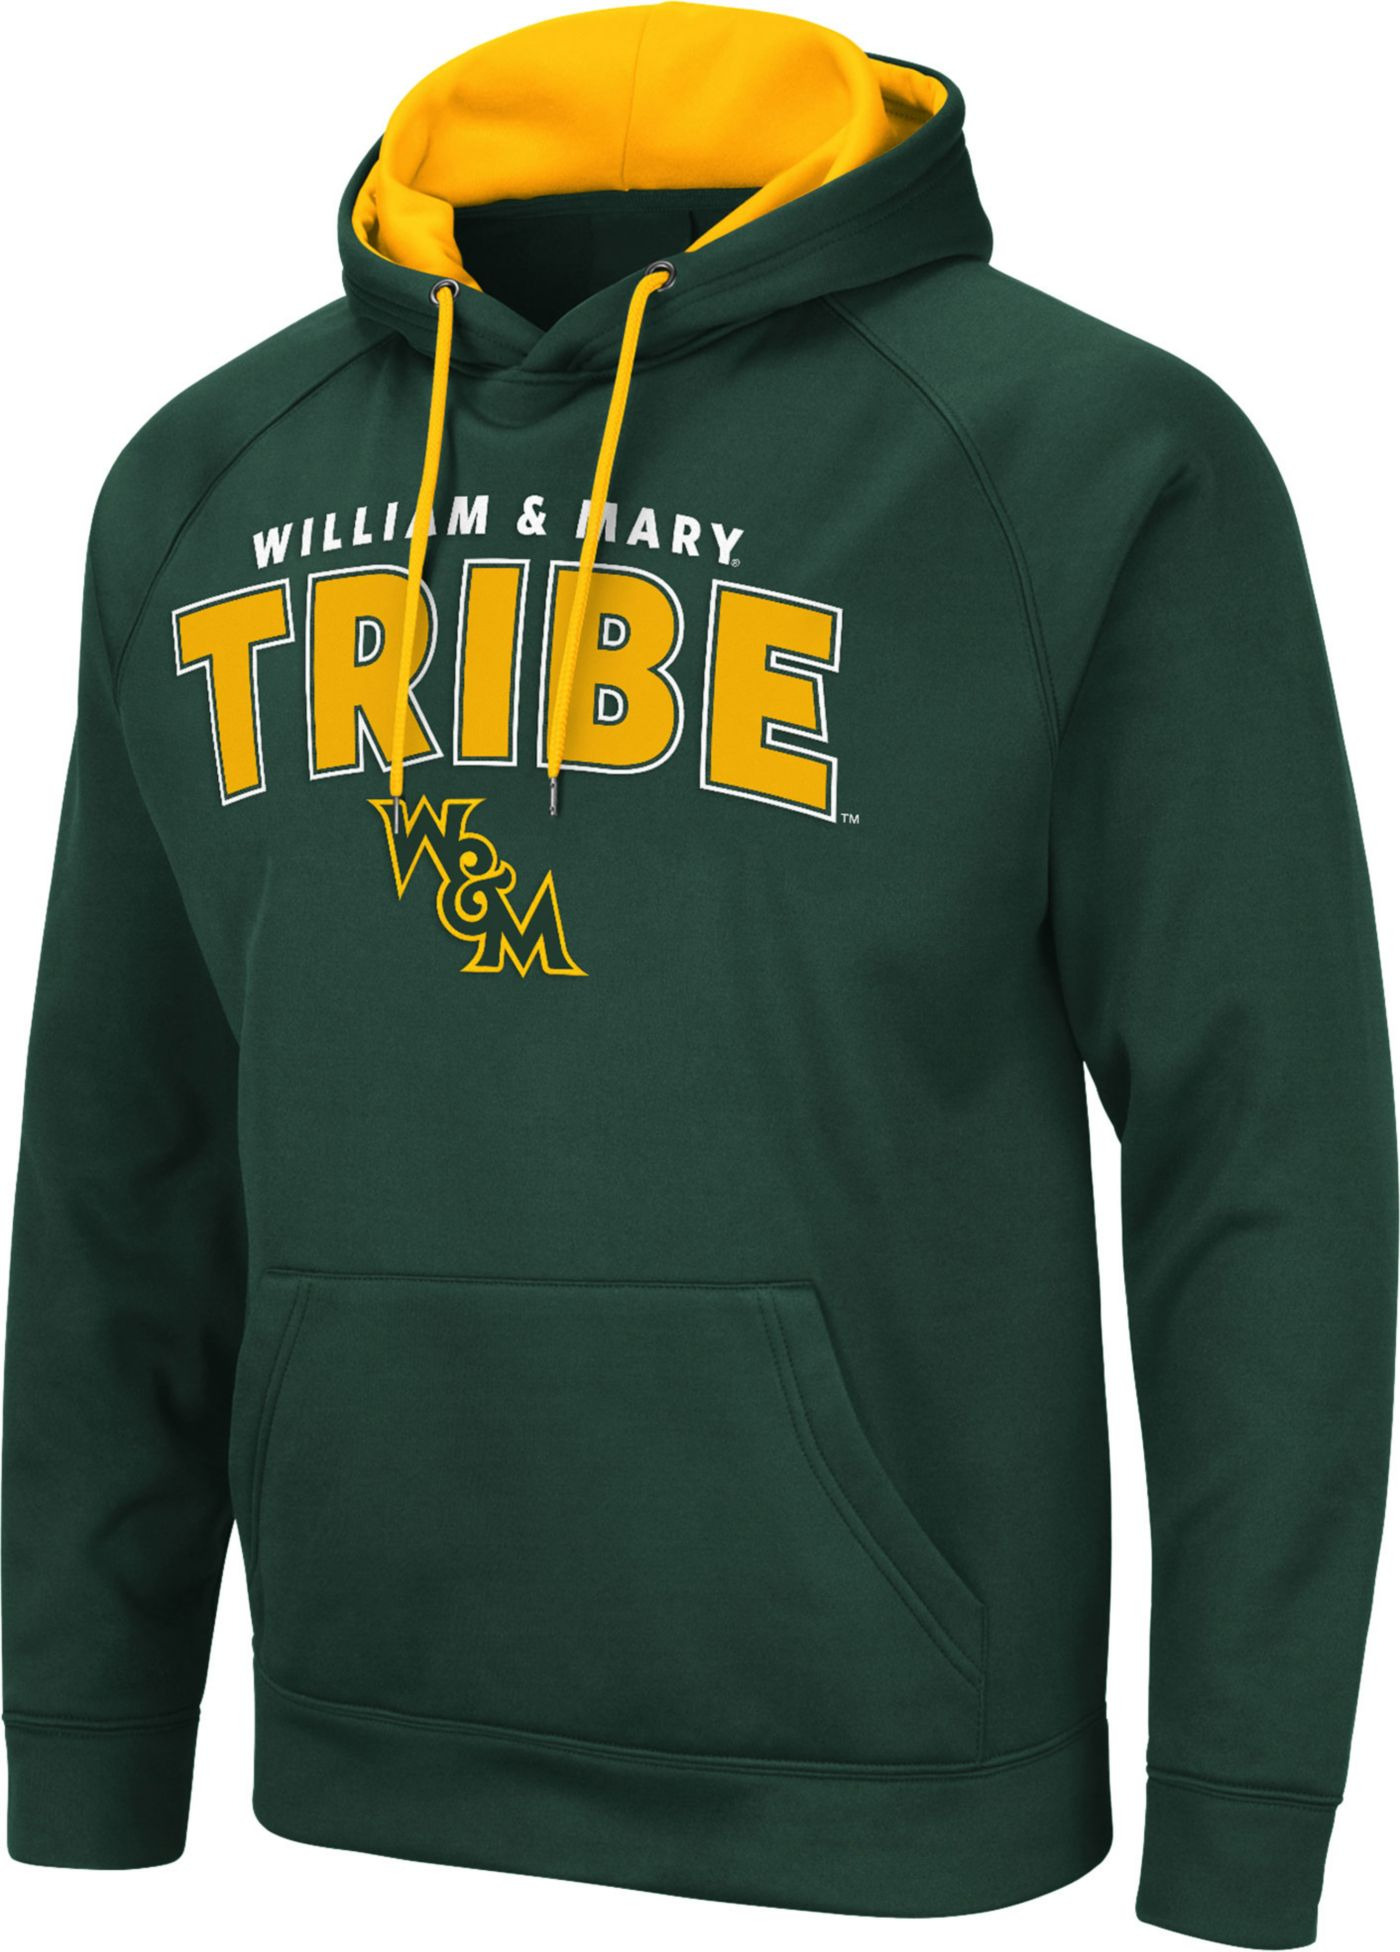 Colosseum Men's William & Mary Tribe Green Pullover Hoodie